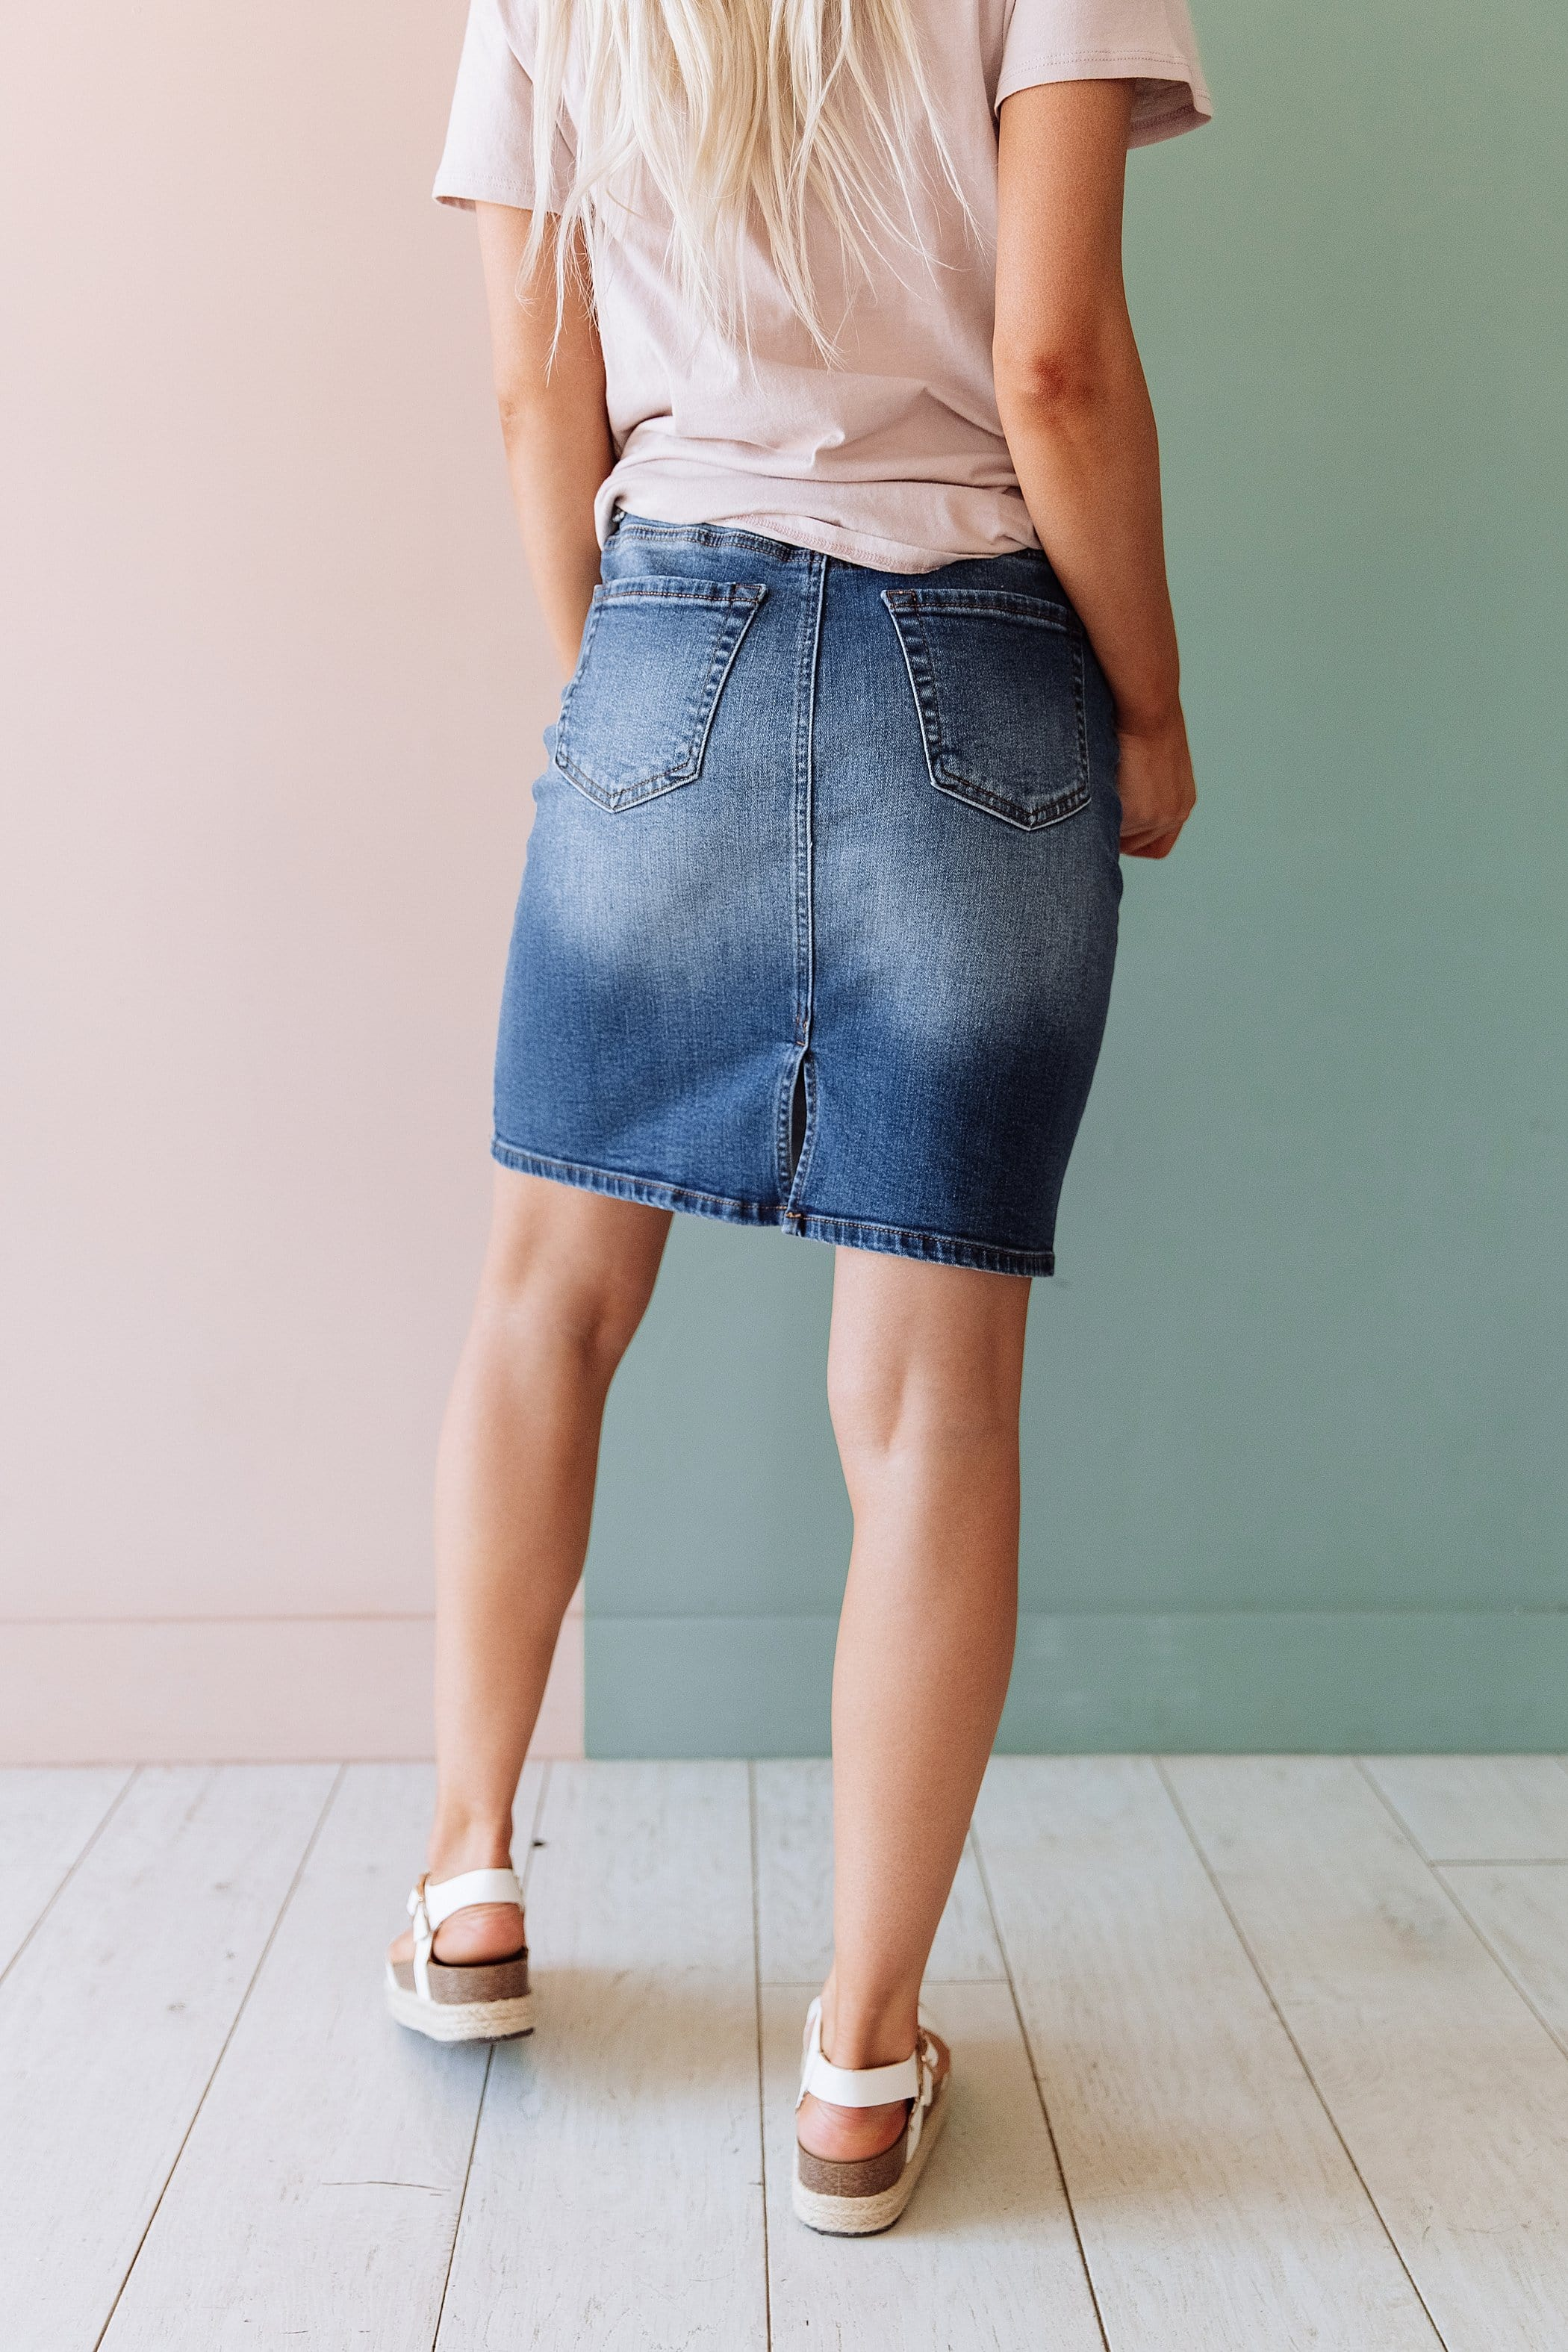 The Ellsworth High Waist Skirt in Denim